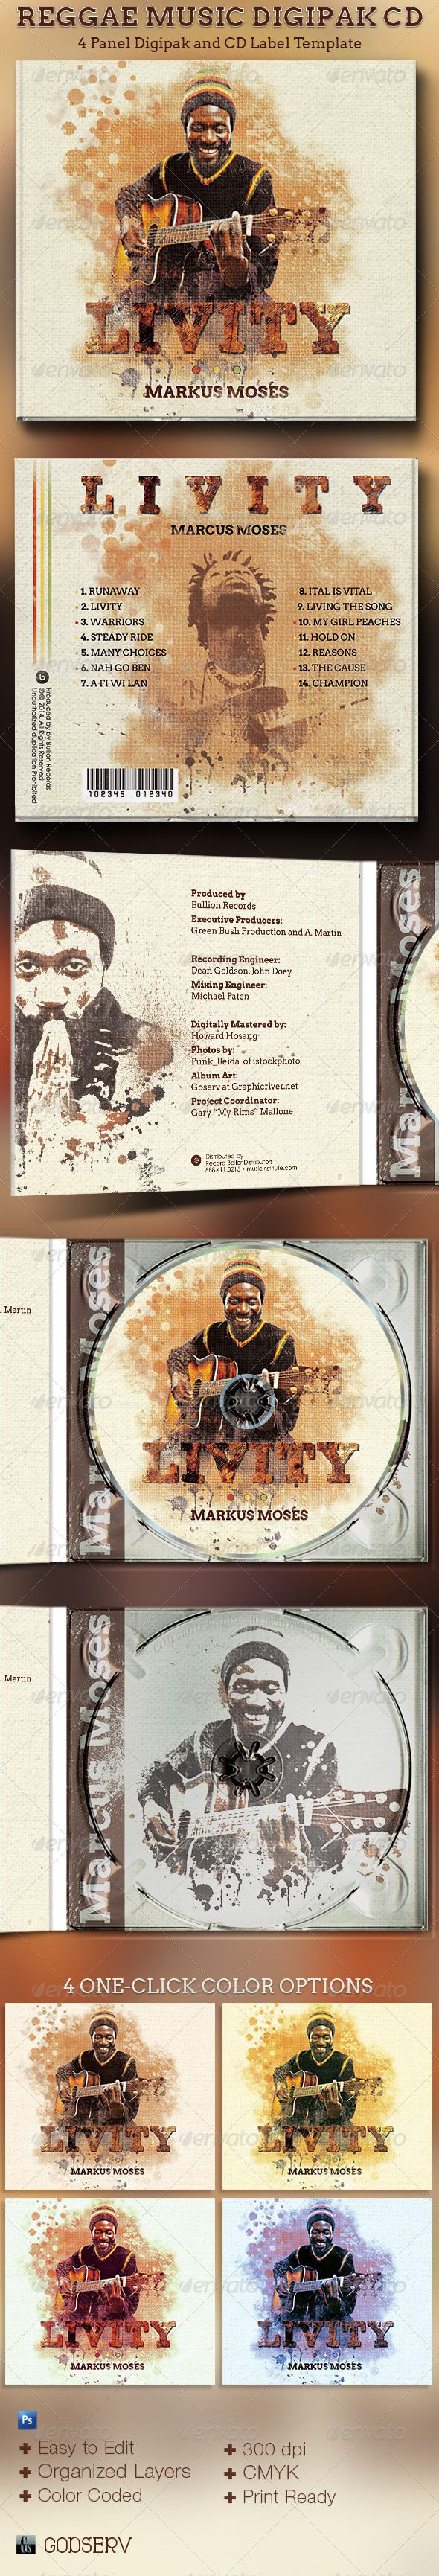 The Reggae Music 4 Panel Digipak CD Artwork Template is customized for any island music or poetry recording artists that needs an artistic design with a retro vibe. It can be used for music albums, audio books, dj's mixes, iTunes sales, demos, and lots more. You can change colors easily by editing the included color options. $6.00